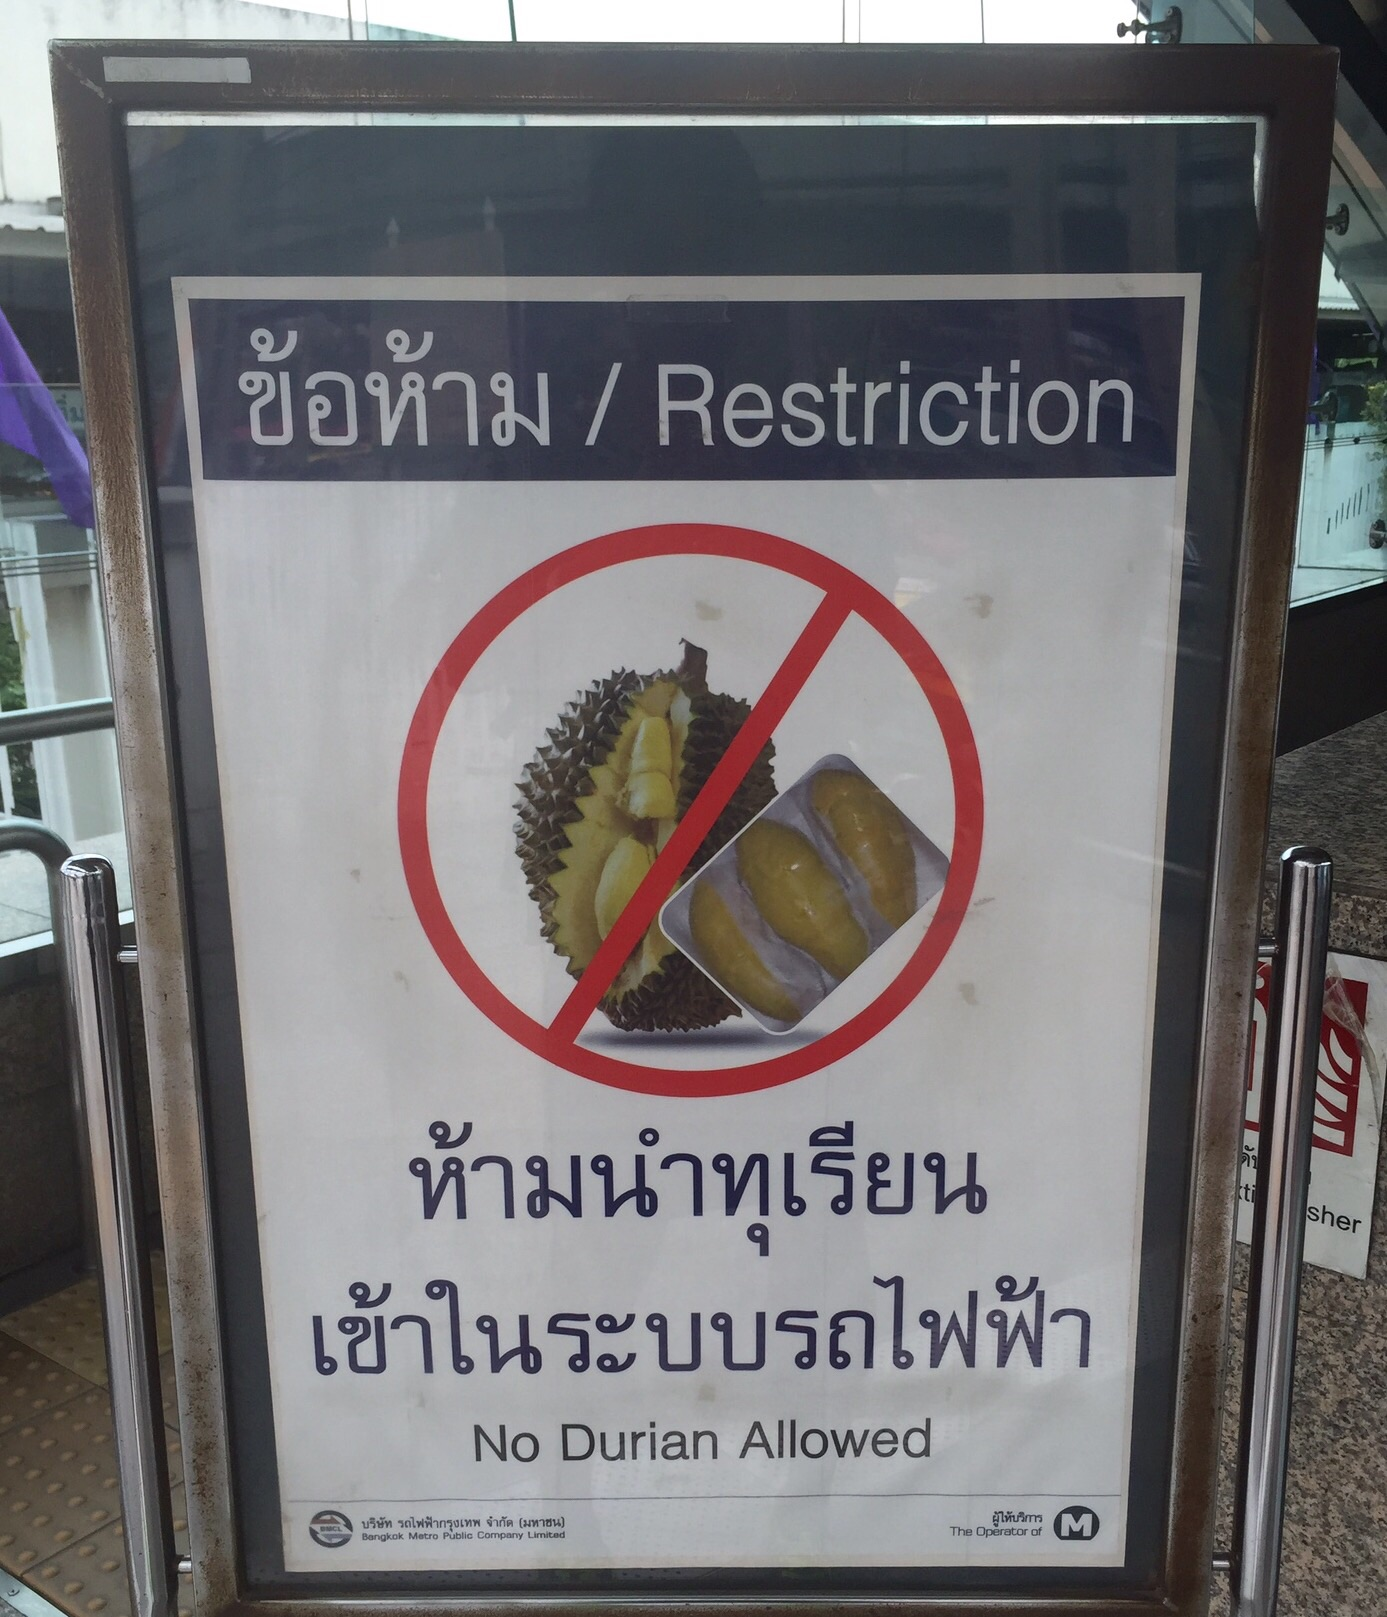 My bag was inspected for durians at the subway station where the famous Or Tor Kor Markets are.